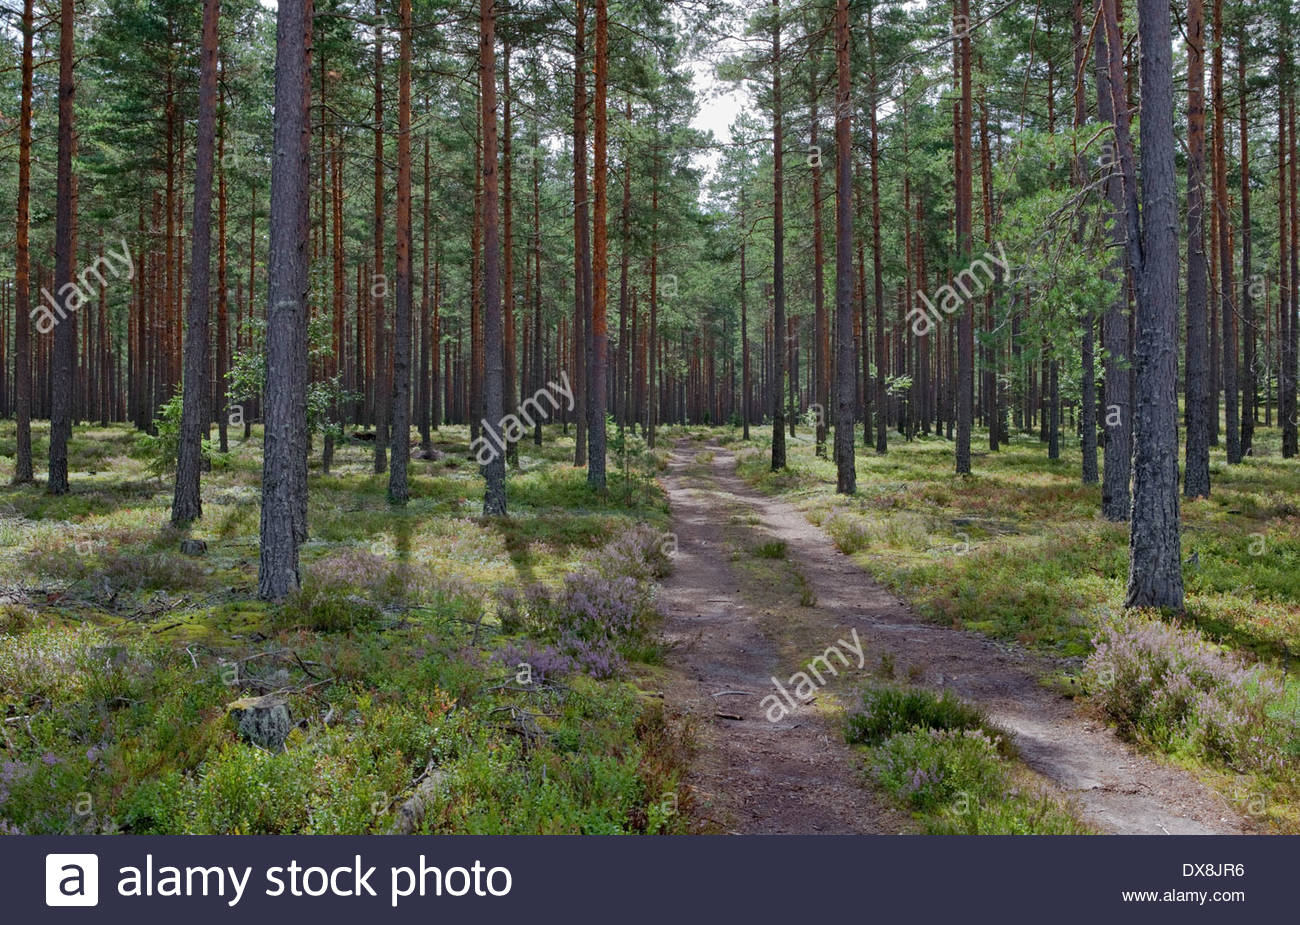 Pine tree forest in Finland Stock Photo